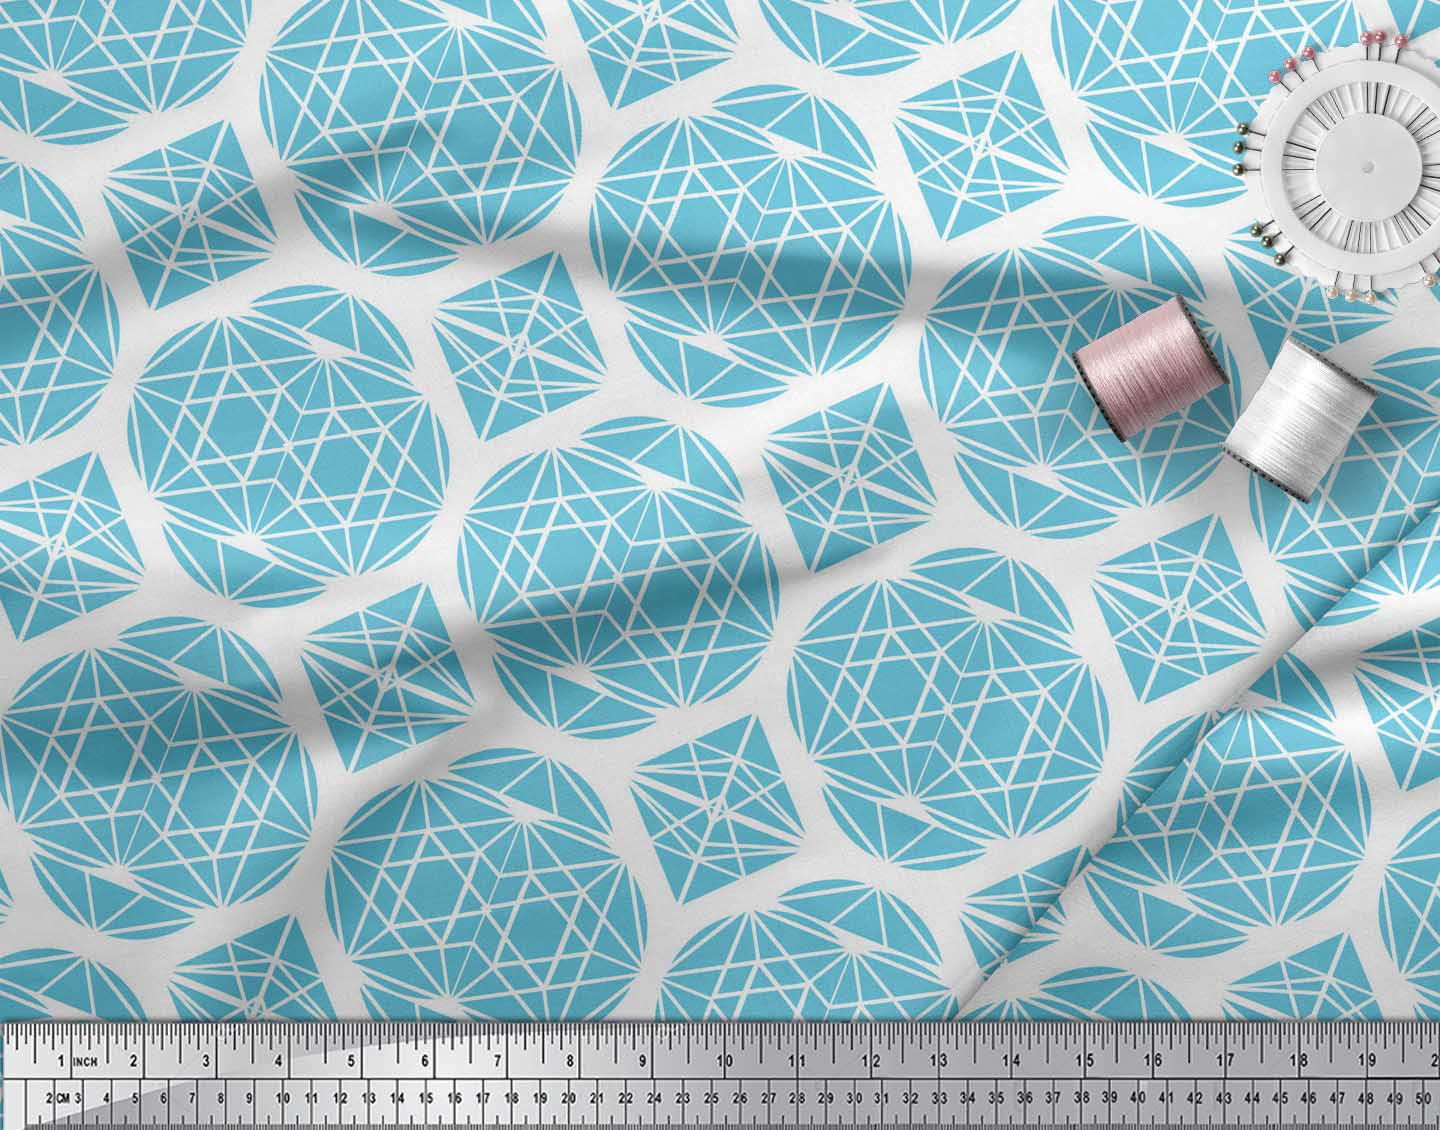 Soimoi-Blue-Cotton-Poplin-Fabric-Triangle-amp-Art-Geometric-Print-bwH thumbnail 3